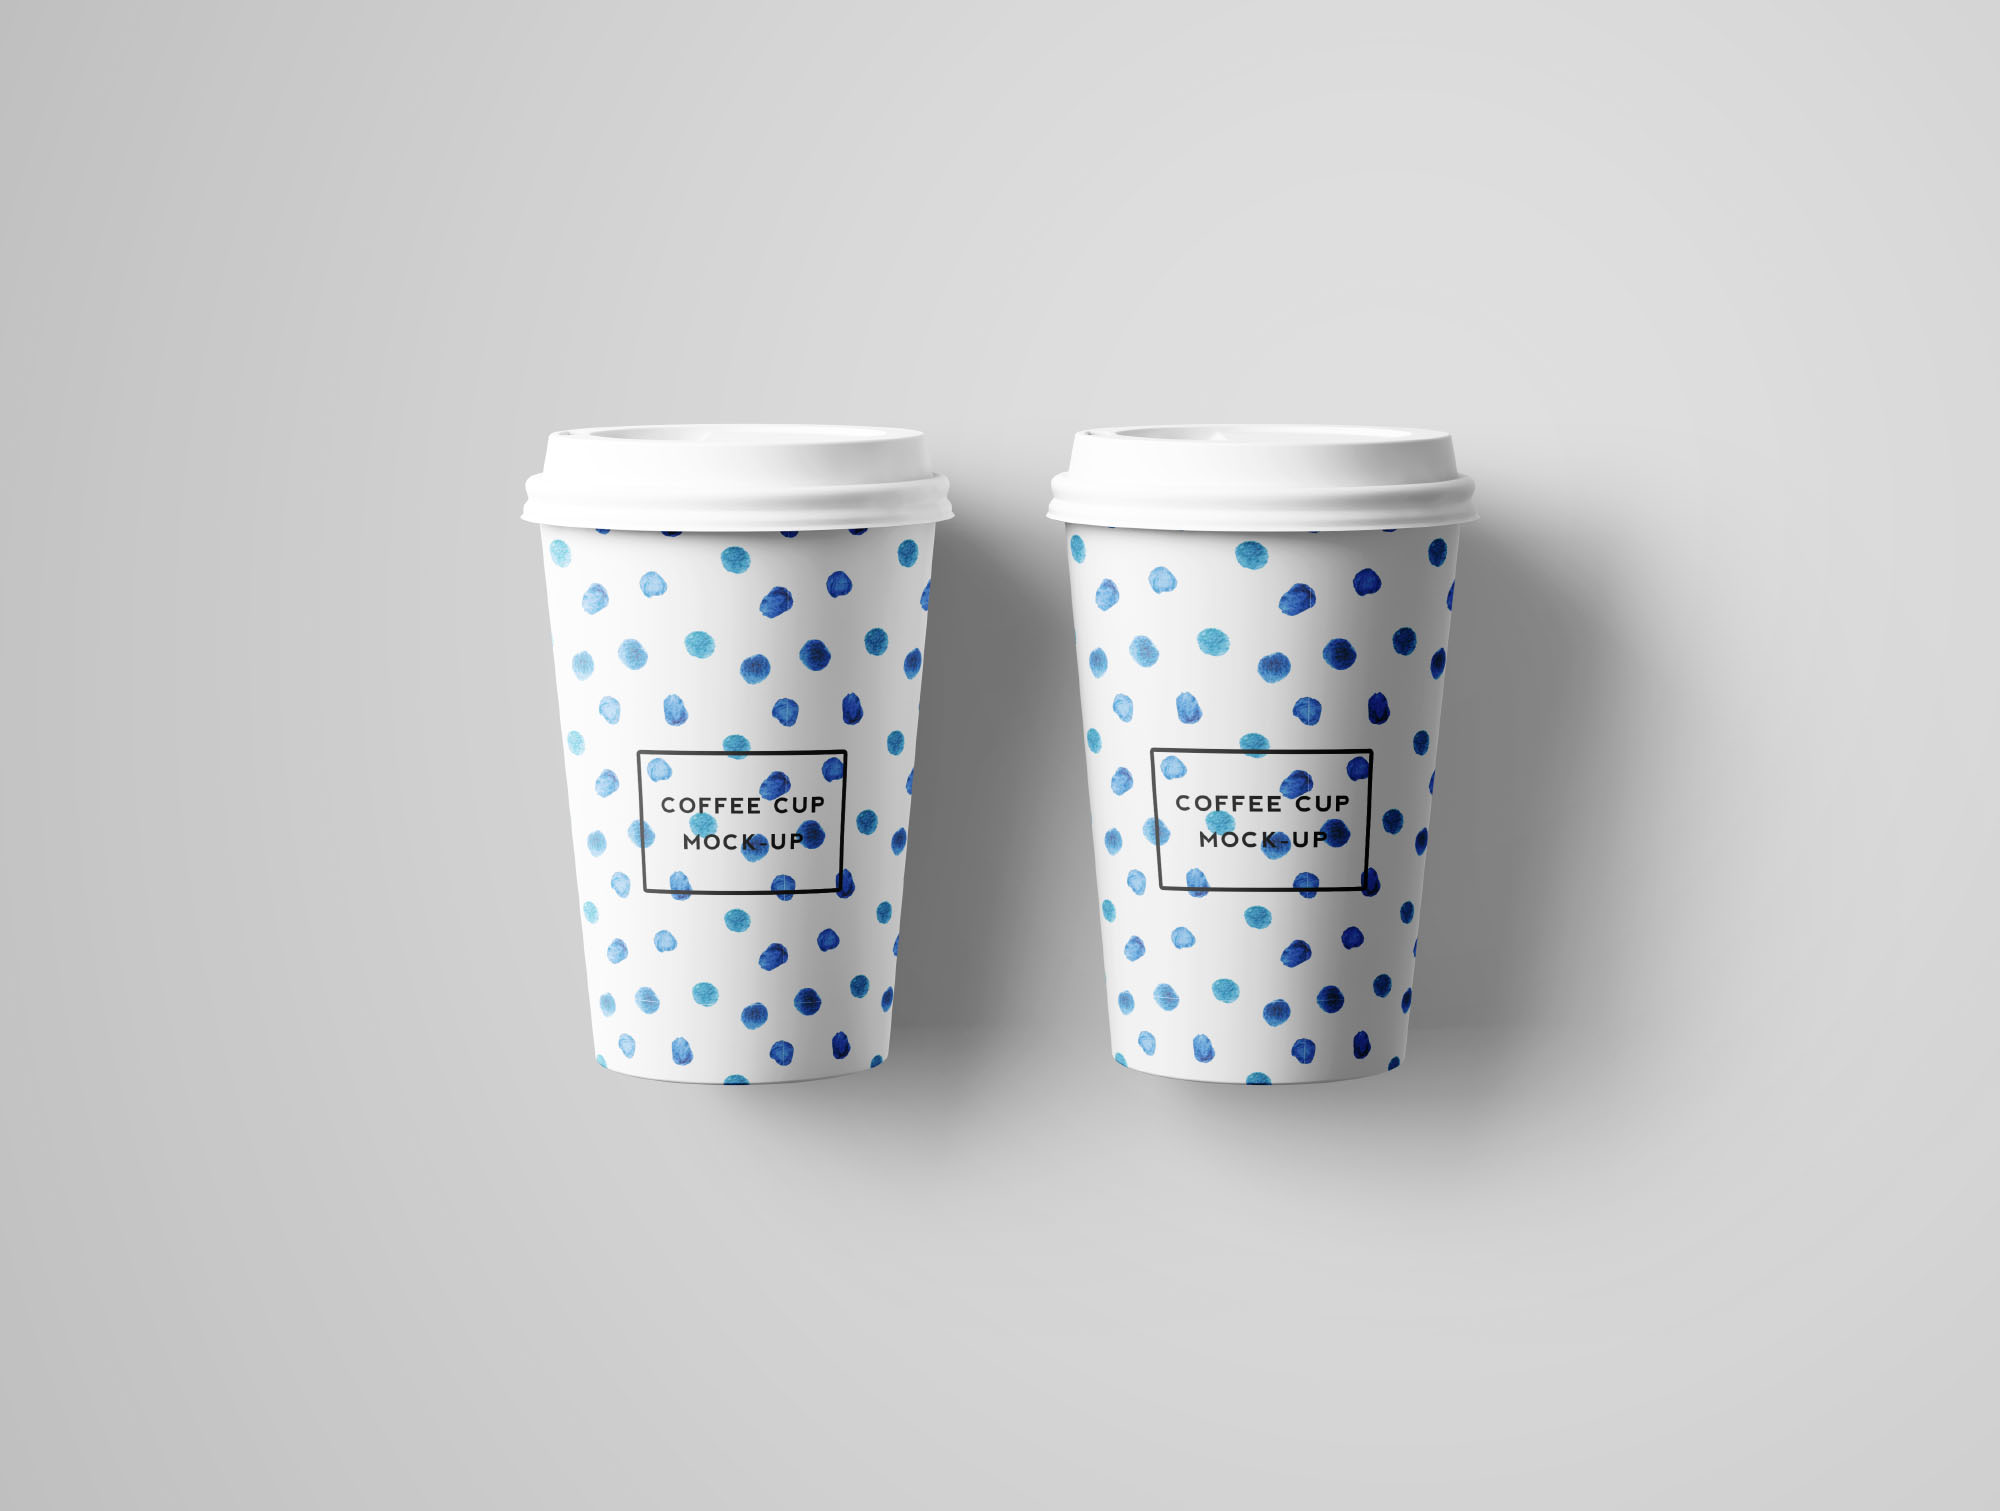 Coffee Cup Mockup - Top